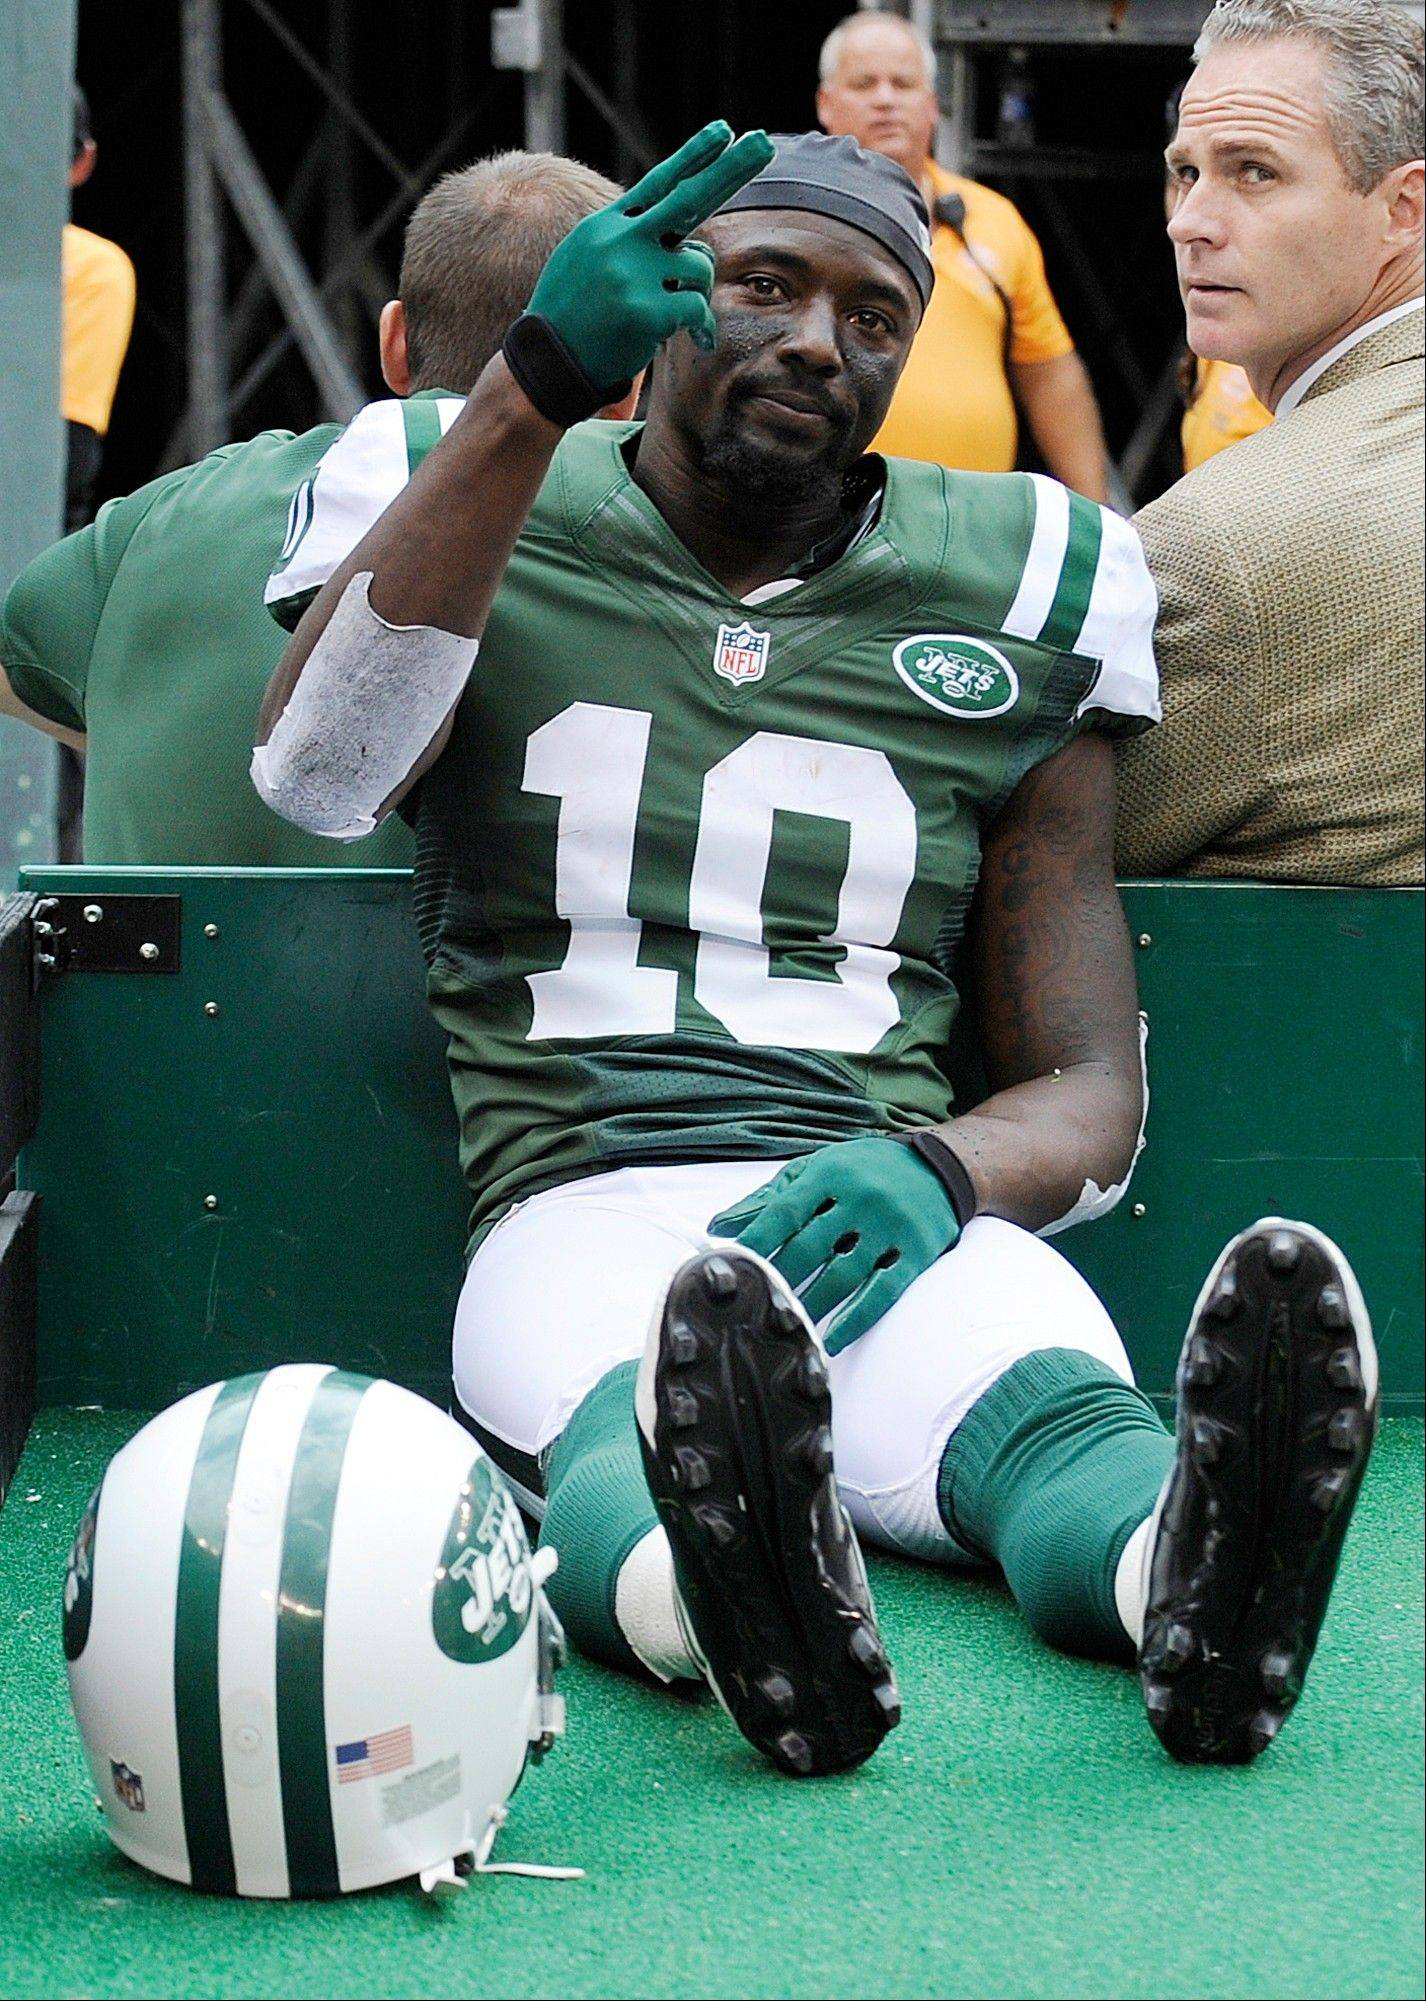 Injured New York Jets wide receiver Santonio Holmes gestures to fans as he is carted off the field during Sunday�s game against San Francisco in East Rutherford, N.J.